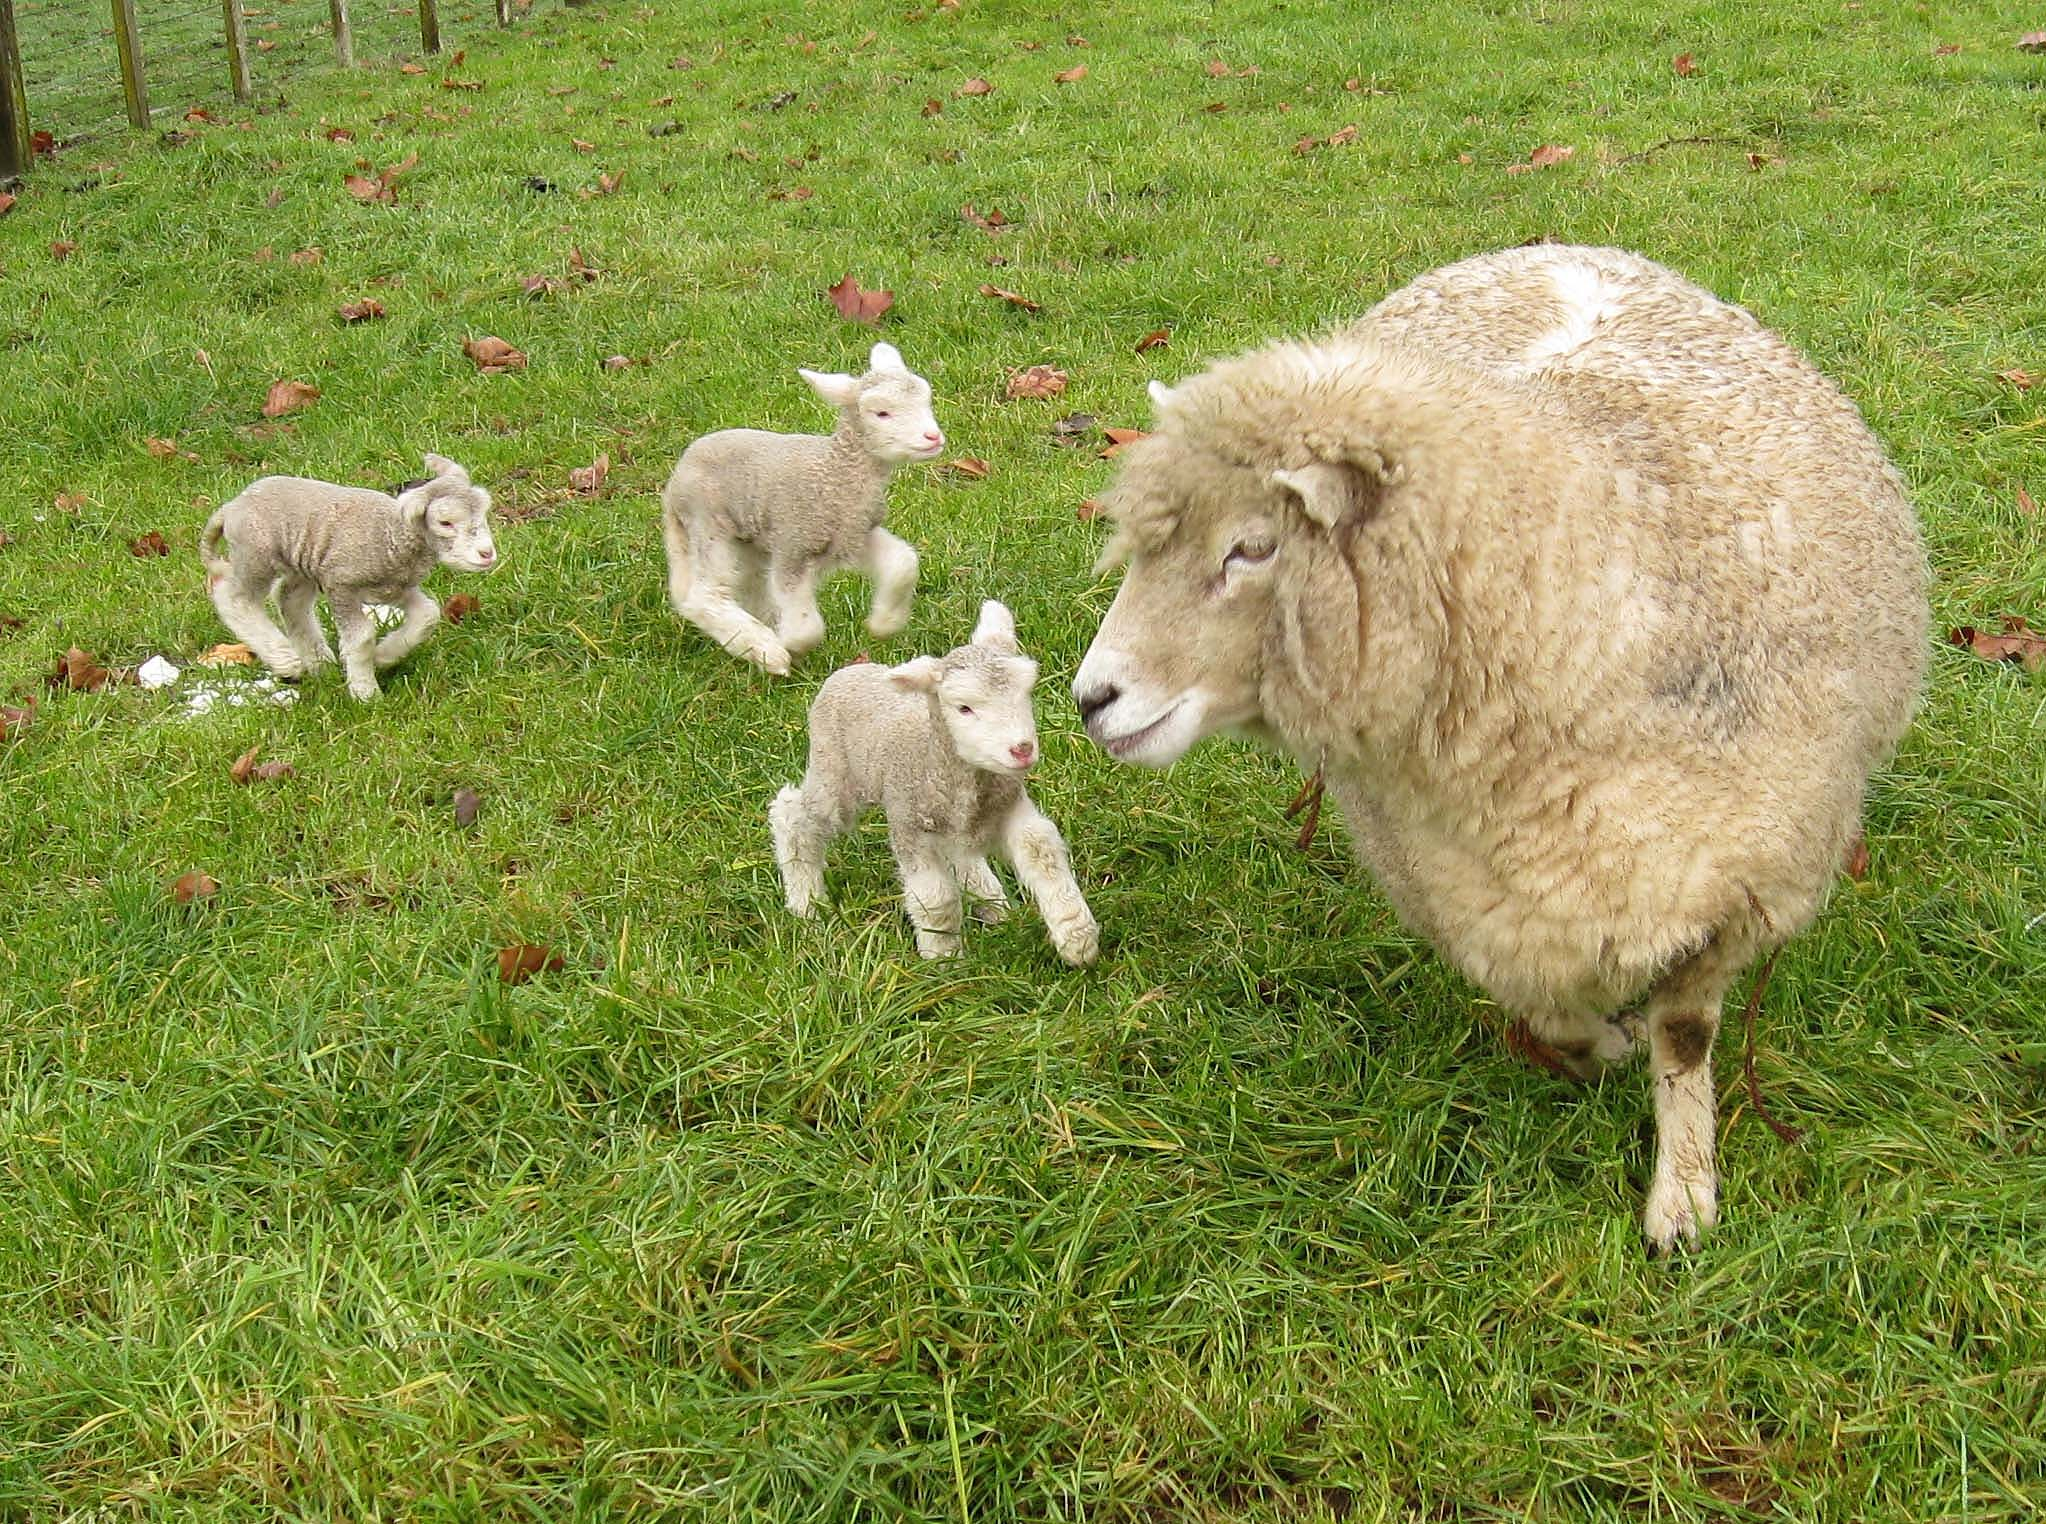 Description Romney sheep, ewe with triplet lambs in New Zealand.jpg